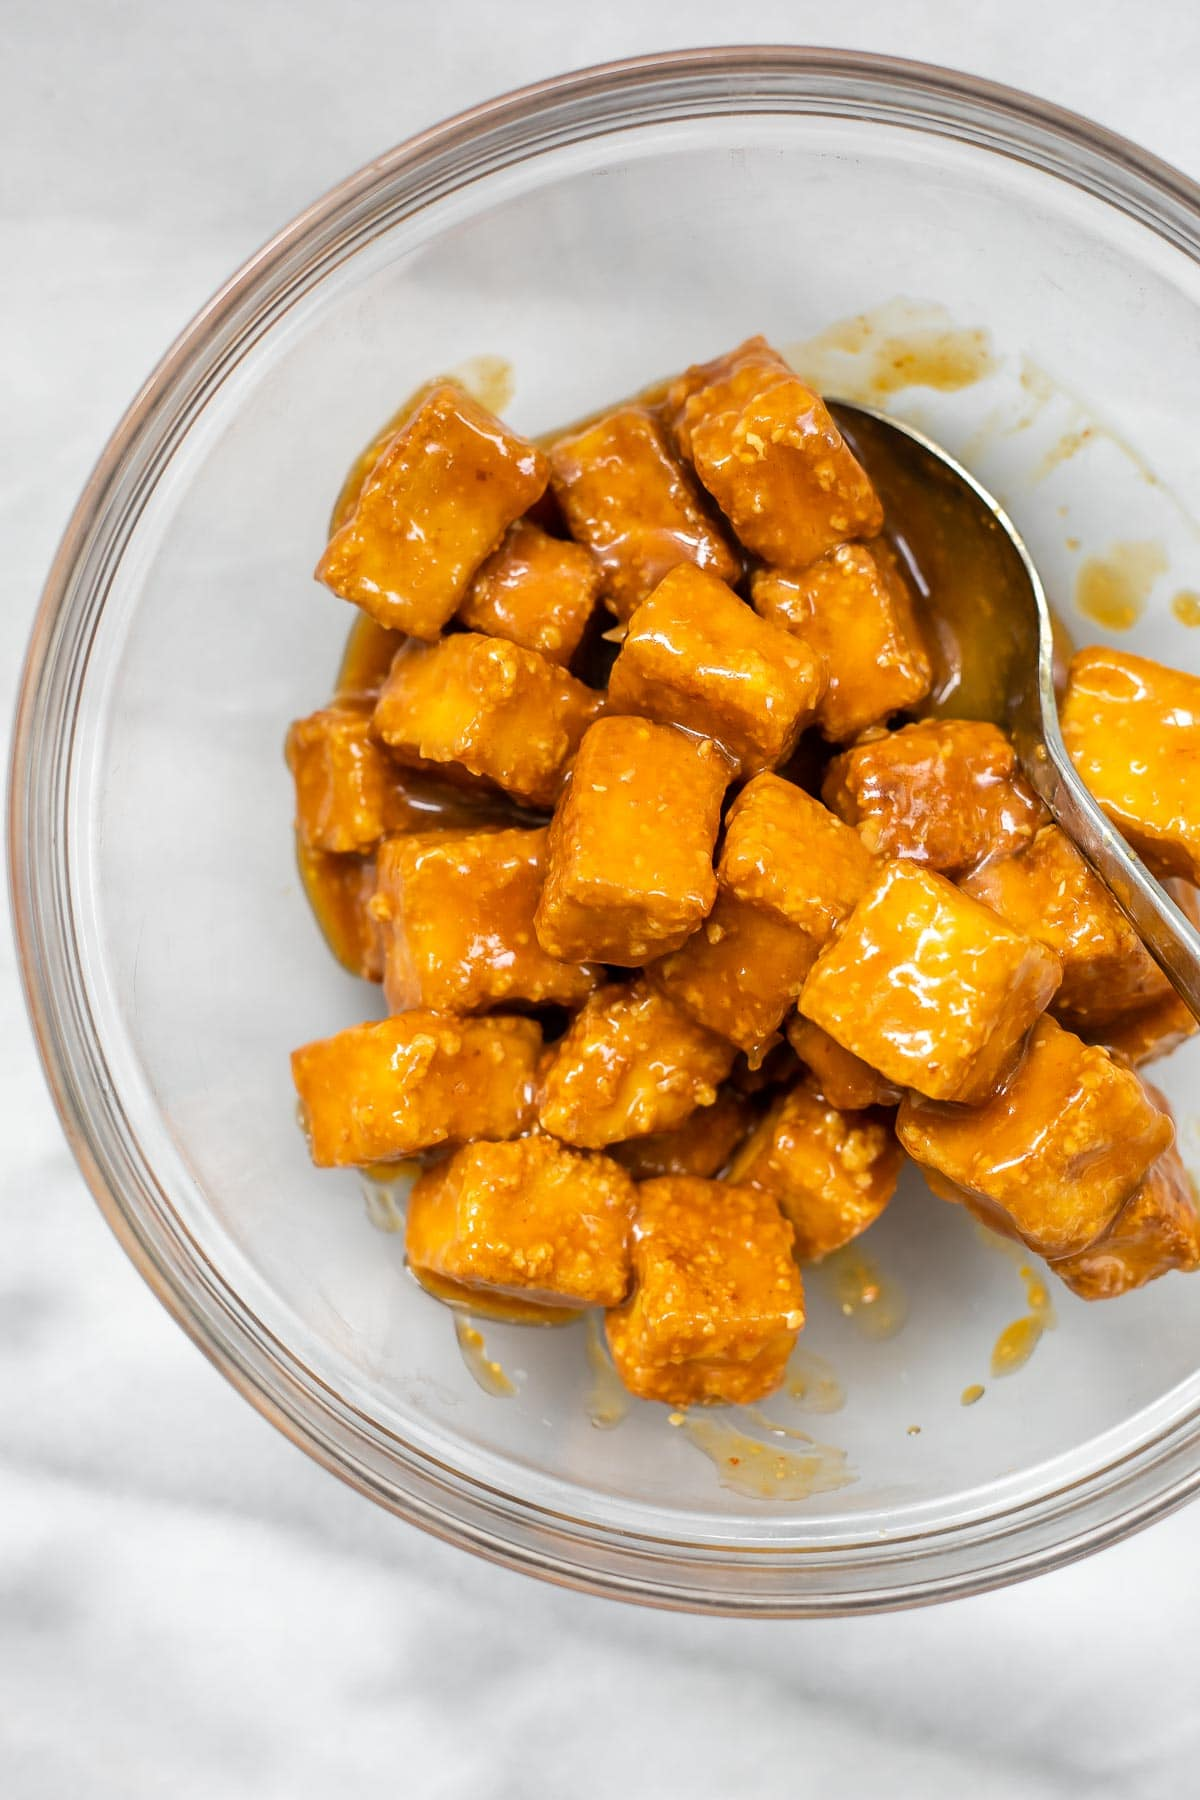 Final orange tofu in a bowl with the sauce on top.